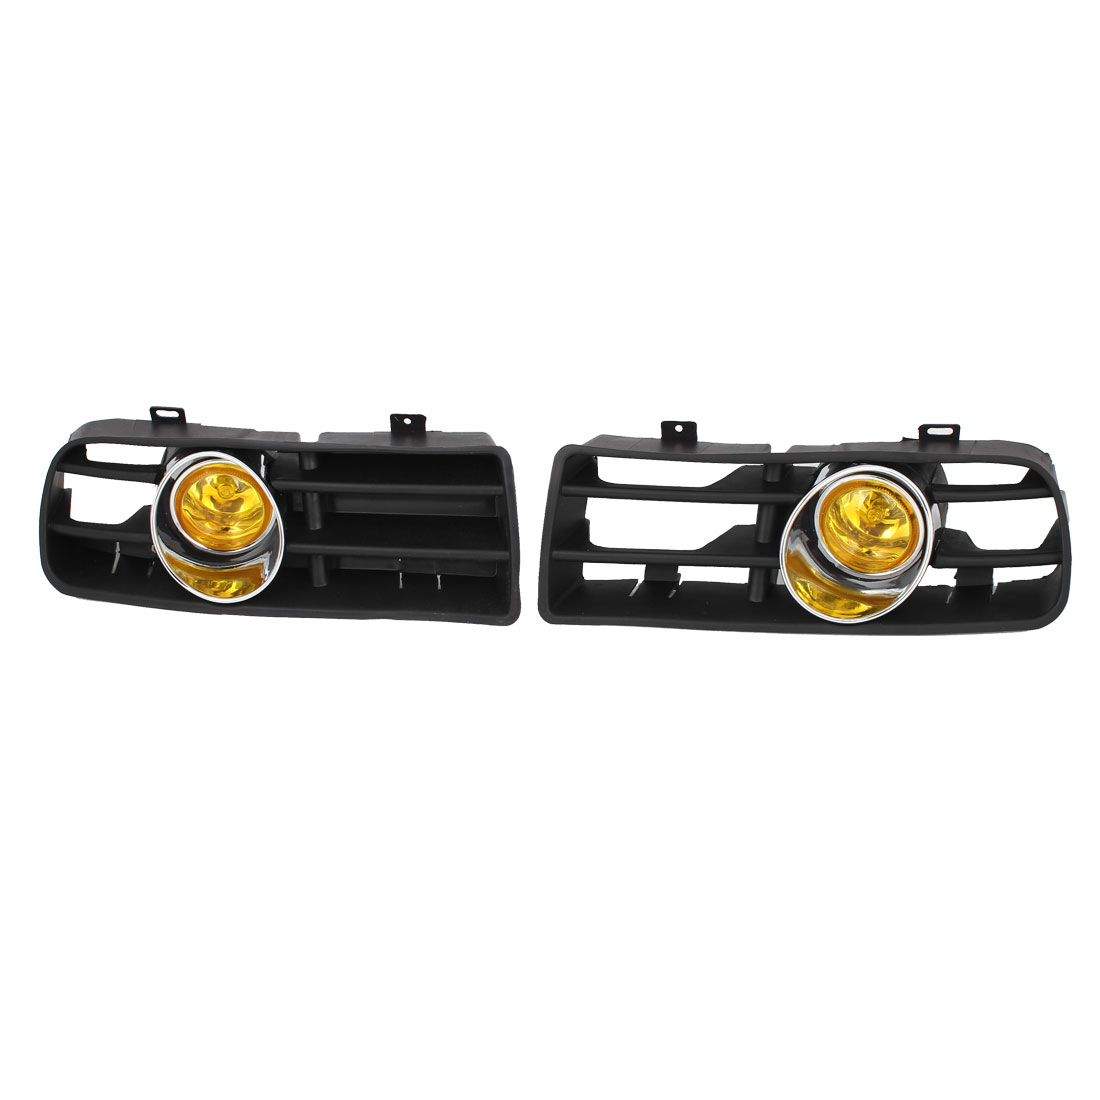 Pair Yellow Front Grille LED Fog Light Lamp Lower Grill for 98-04 VW Golf